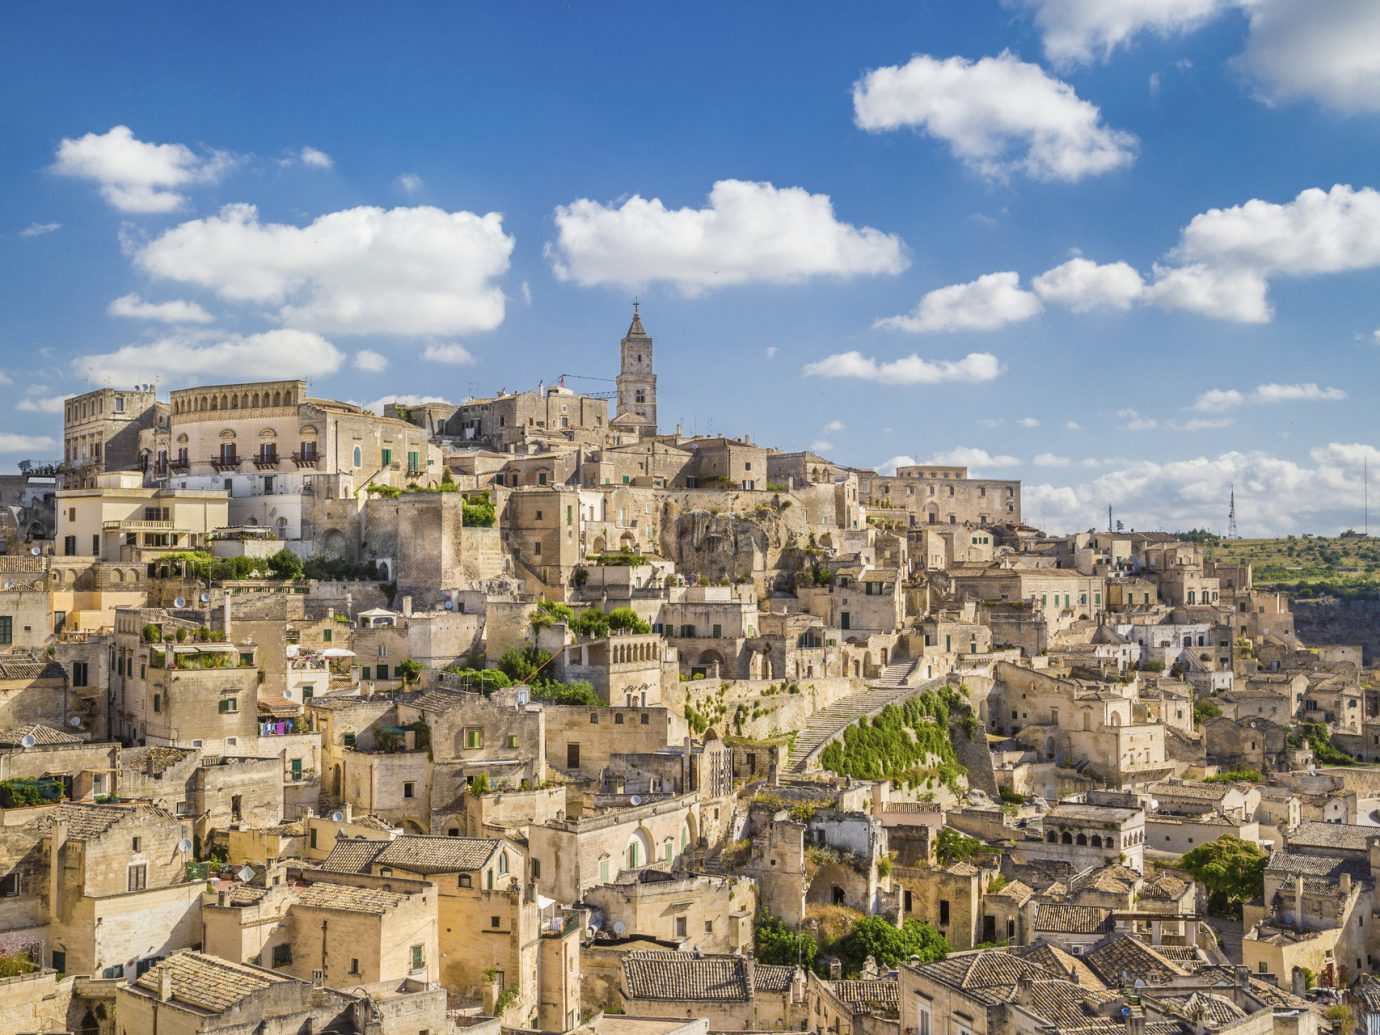 Trip Ideas sky building outdoor Town historic site geographical feature landmark human settlement cityscape ancient history Ruins tourism Village residential area landscape Coast panorama unesco world heritage site ancient rome ruin